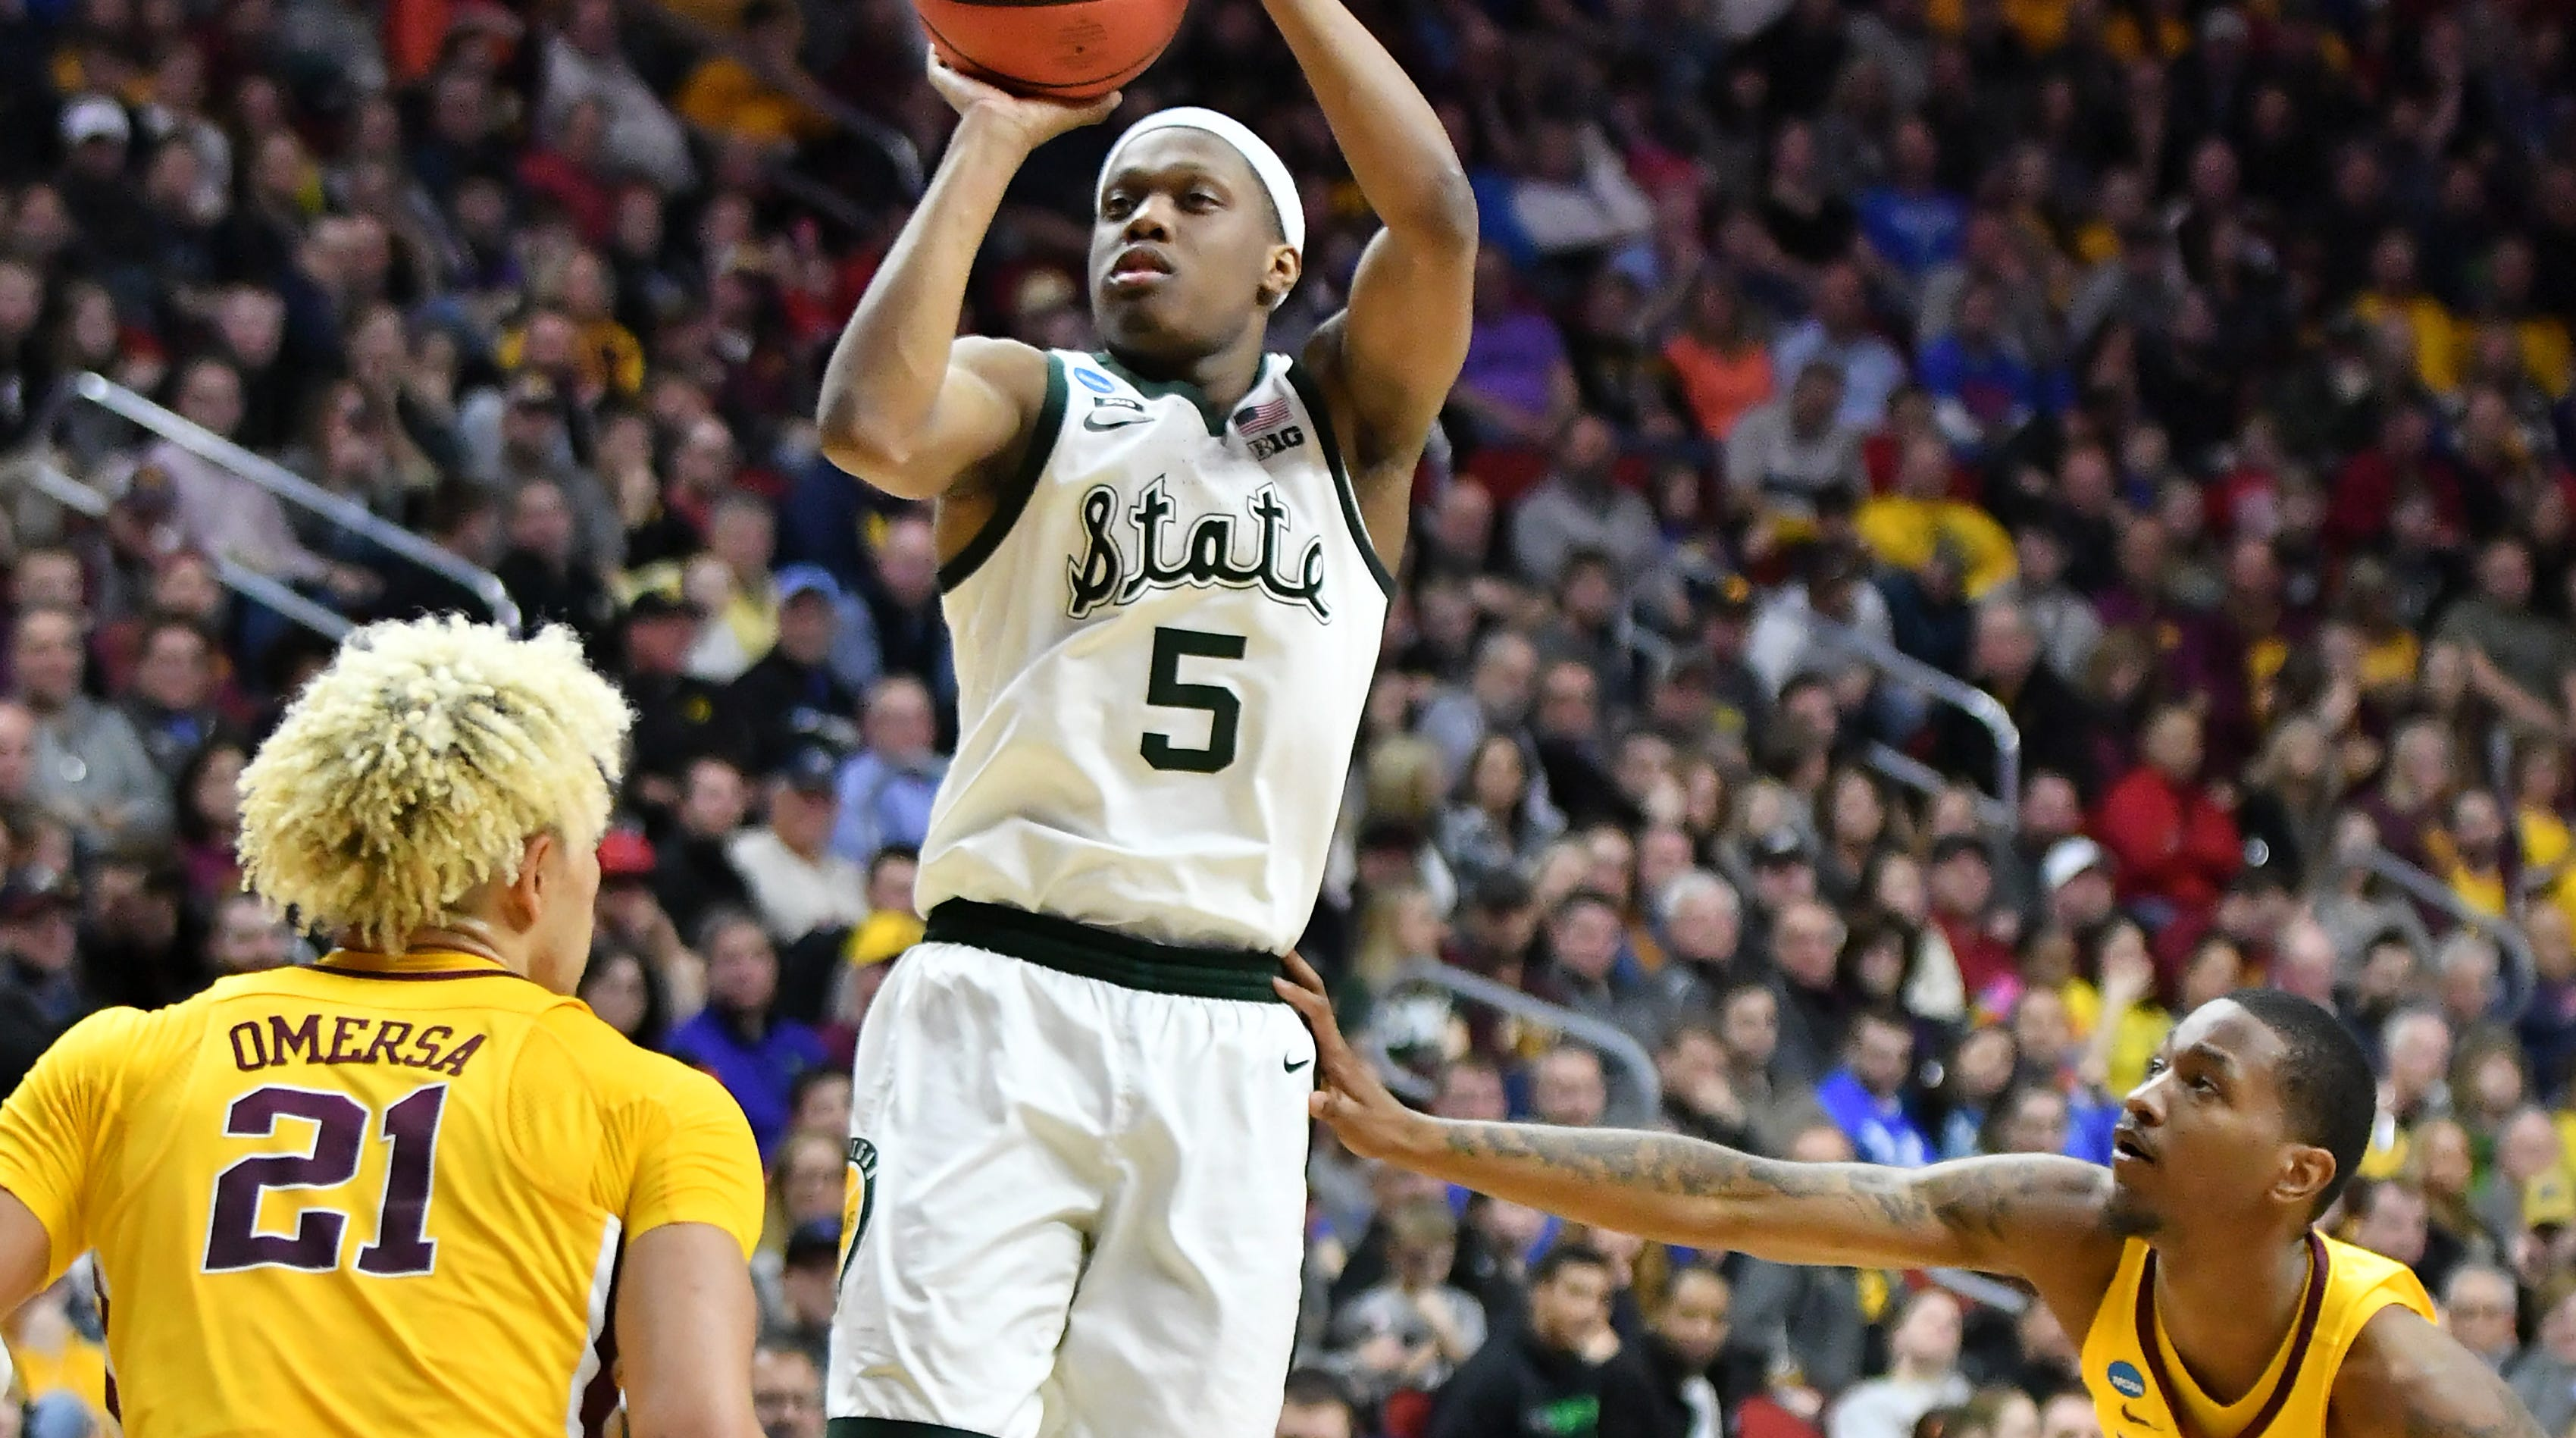 Michigan State overwhelms Minnesota, reaches first Sweet 16 in four years